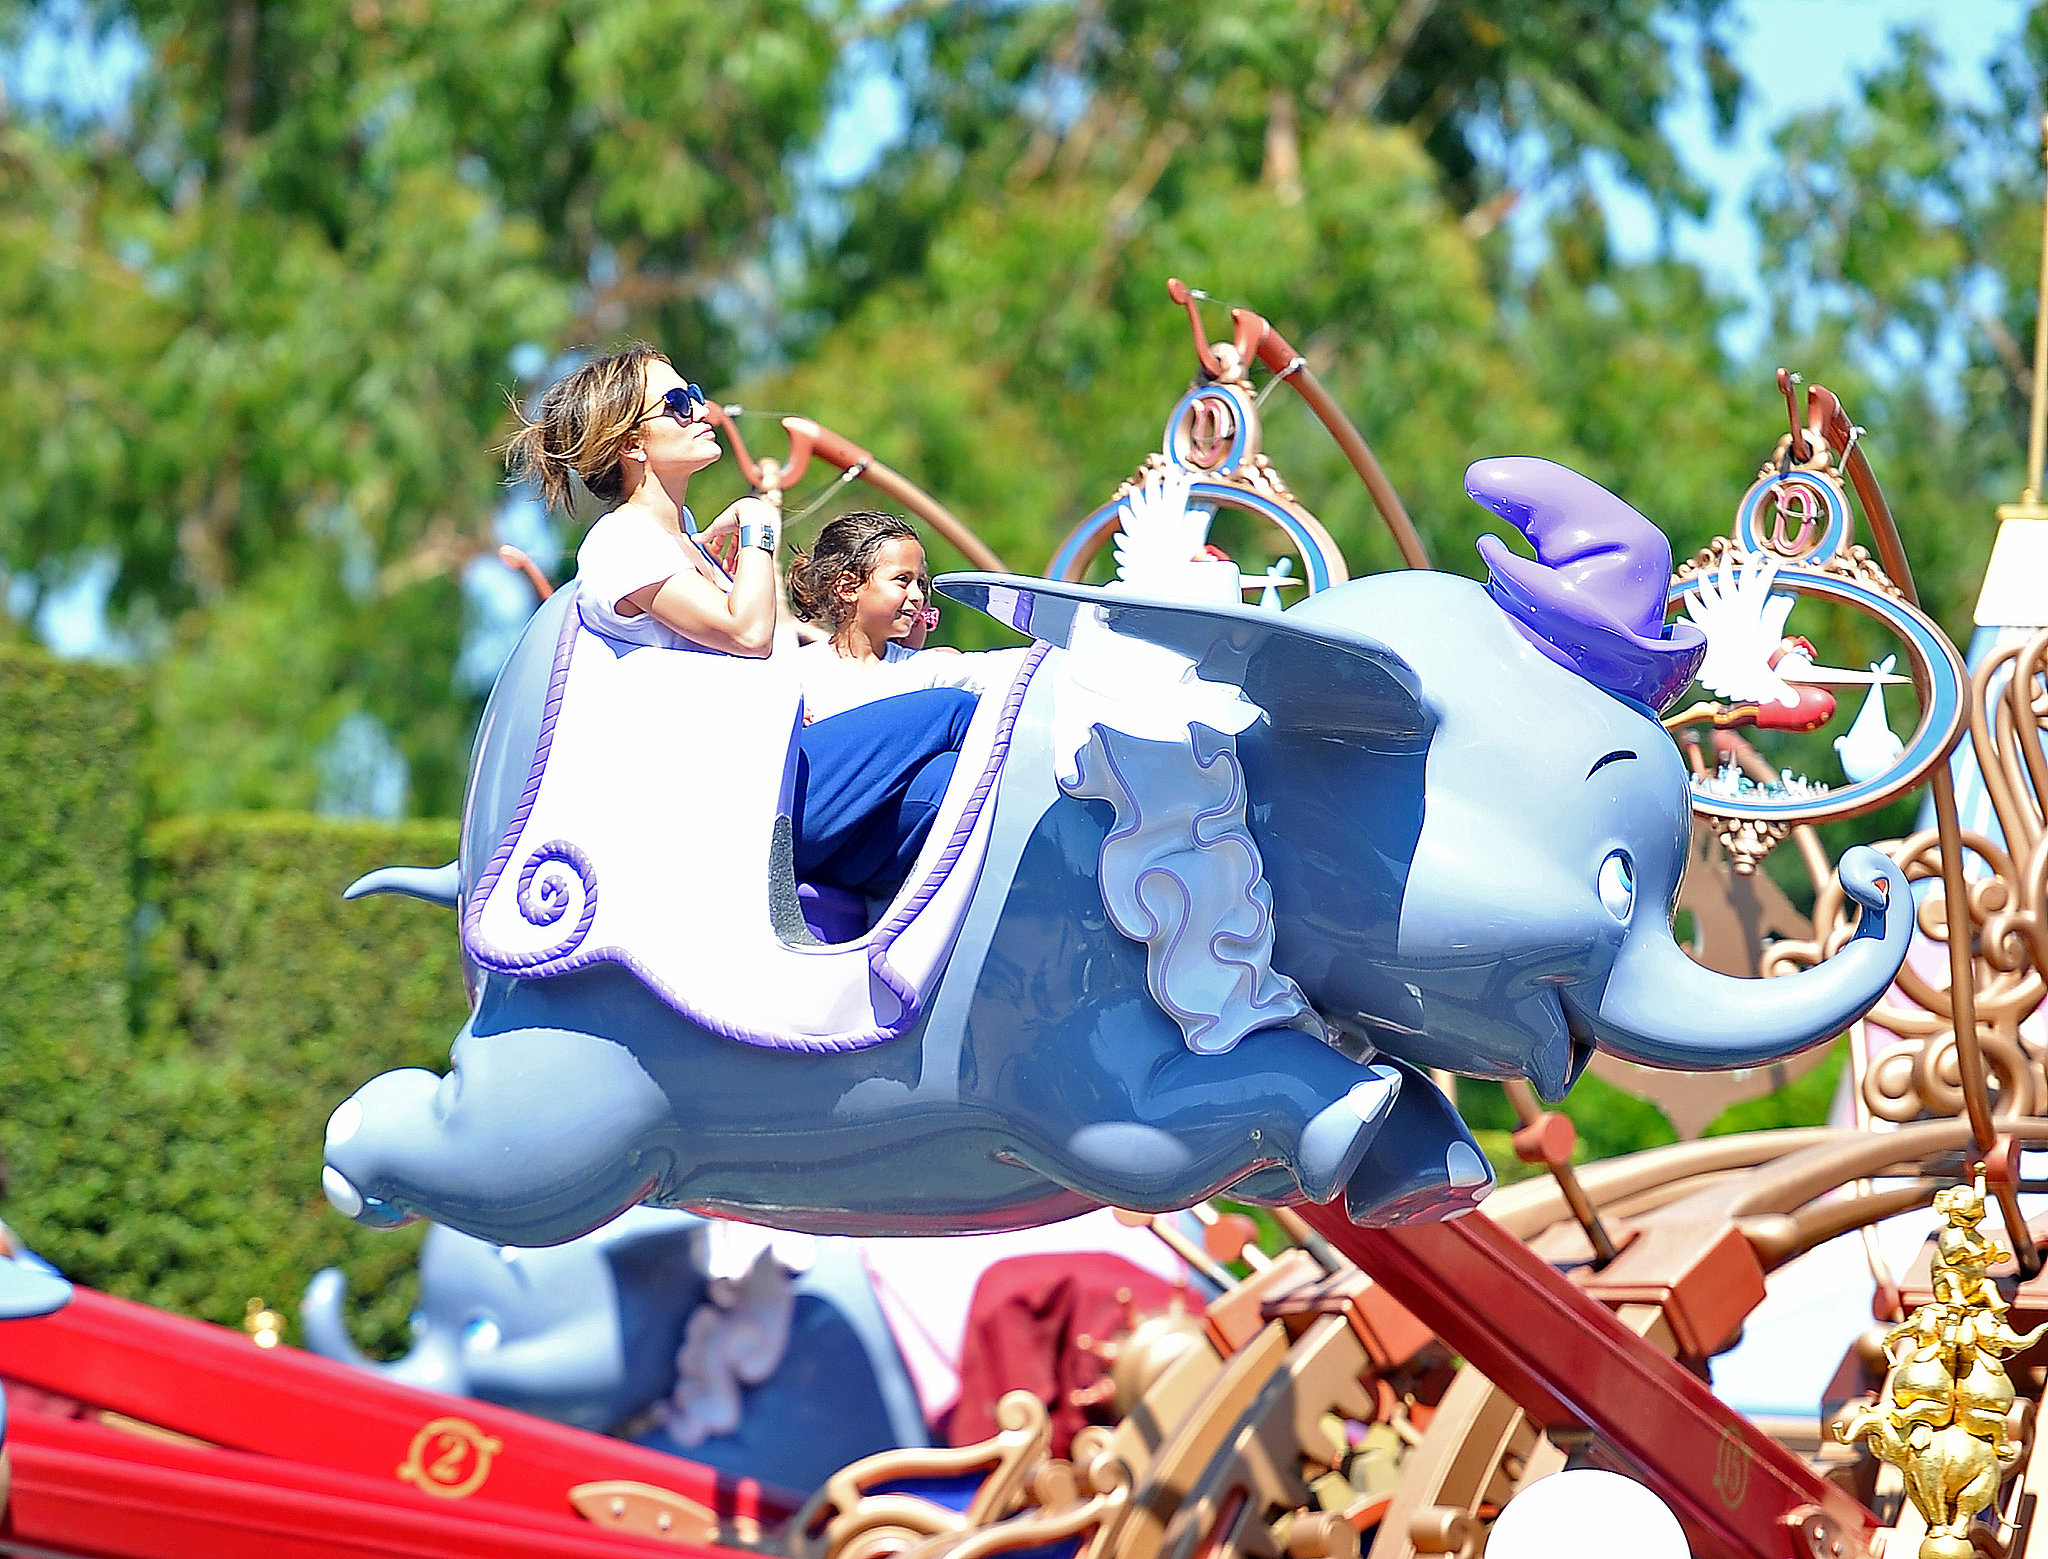 Jennifer Lopez and her daughter, Emme, enjoyed a ride together at Disneyland.